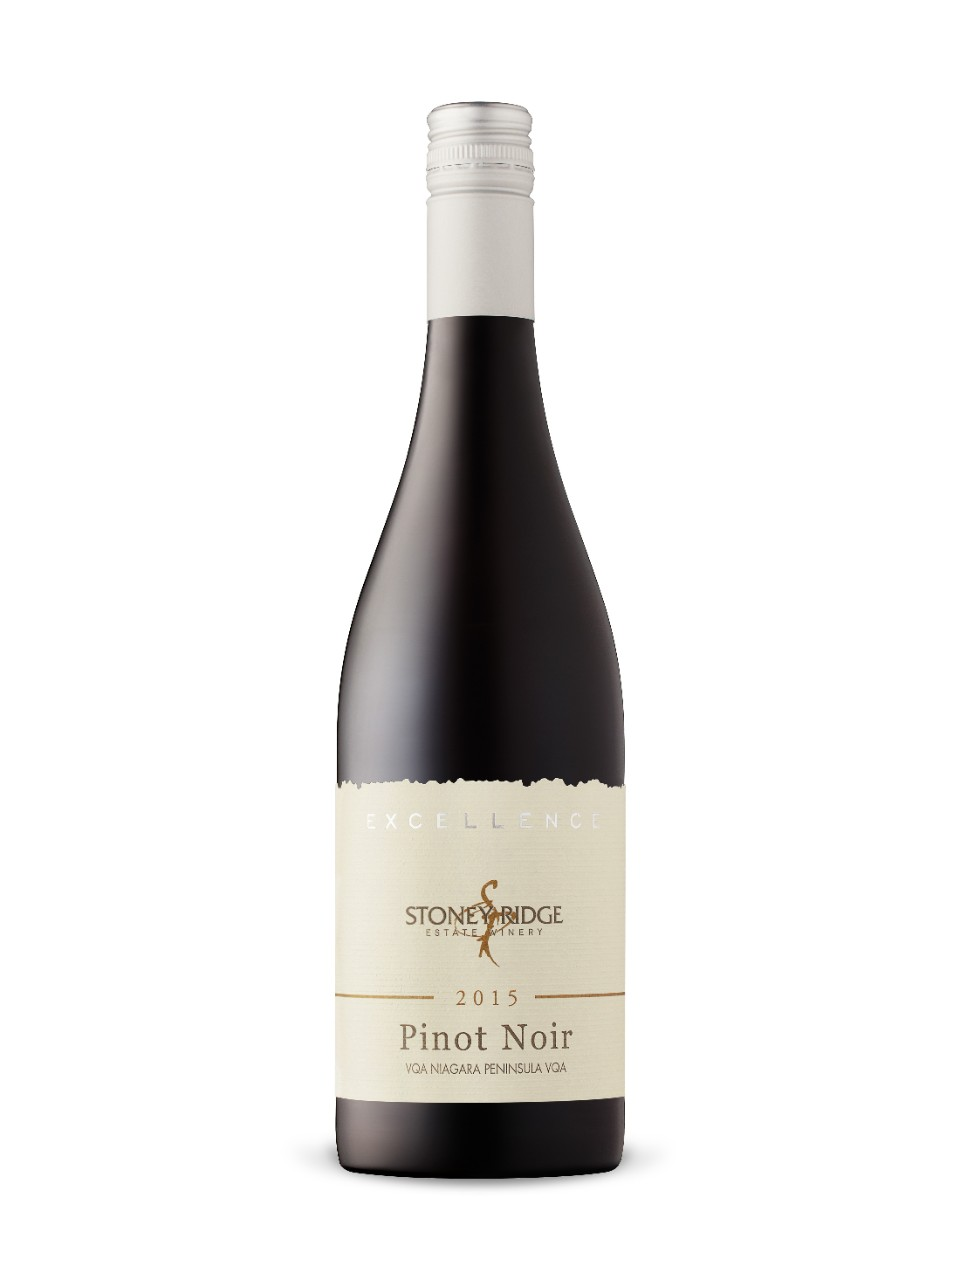 Stoney Ridge Excellence Pinot Noir 2015